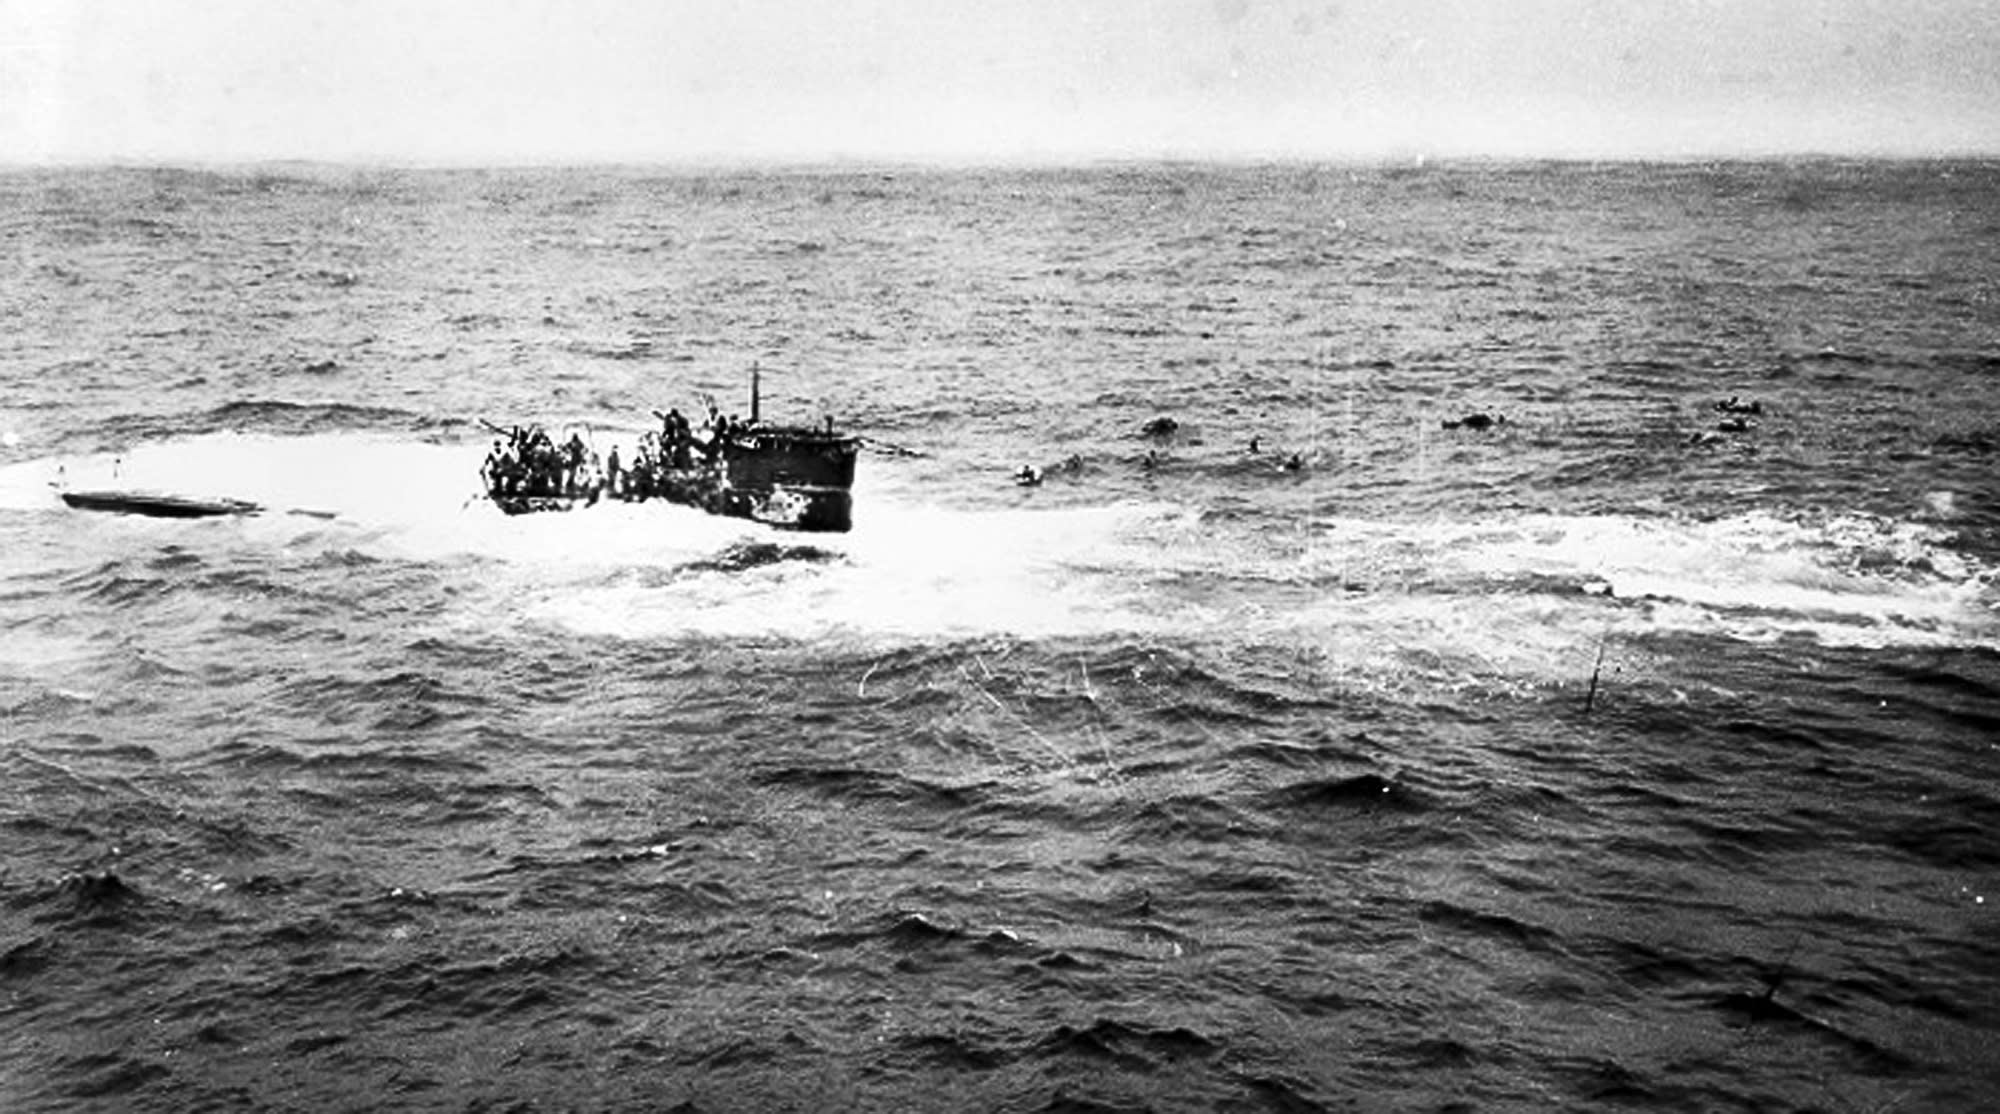 This April 16, 1944 photo provided by the U.S. Navy, posted on a U.S. Coast Guard web site, shows crewmen of German submarine U-550 abandoning ship in the Atlantic Ocean after being depth charged by the USS Joyce, a destroyer in an Allied convoy that the submarine attacked. A team of explorers found the U-550, a World War II-era German submarine, Monday, July 23, 2012, on the floor of the Atlantic about 70 miles south of Nantucket Island, Mass. (AP Photo/U.S. Navy)